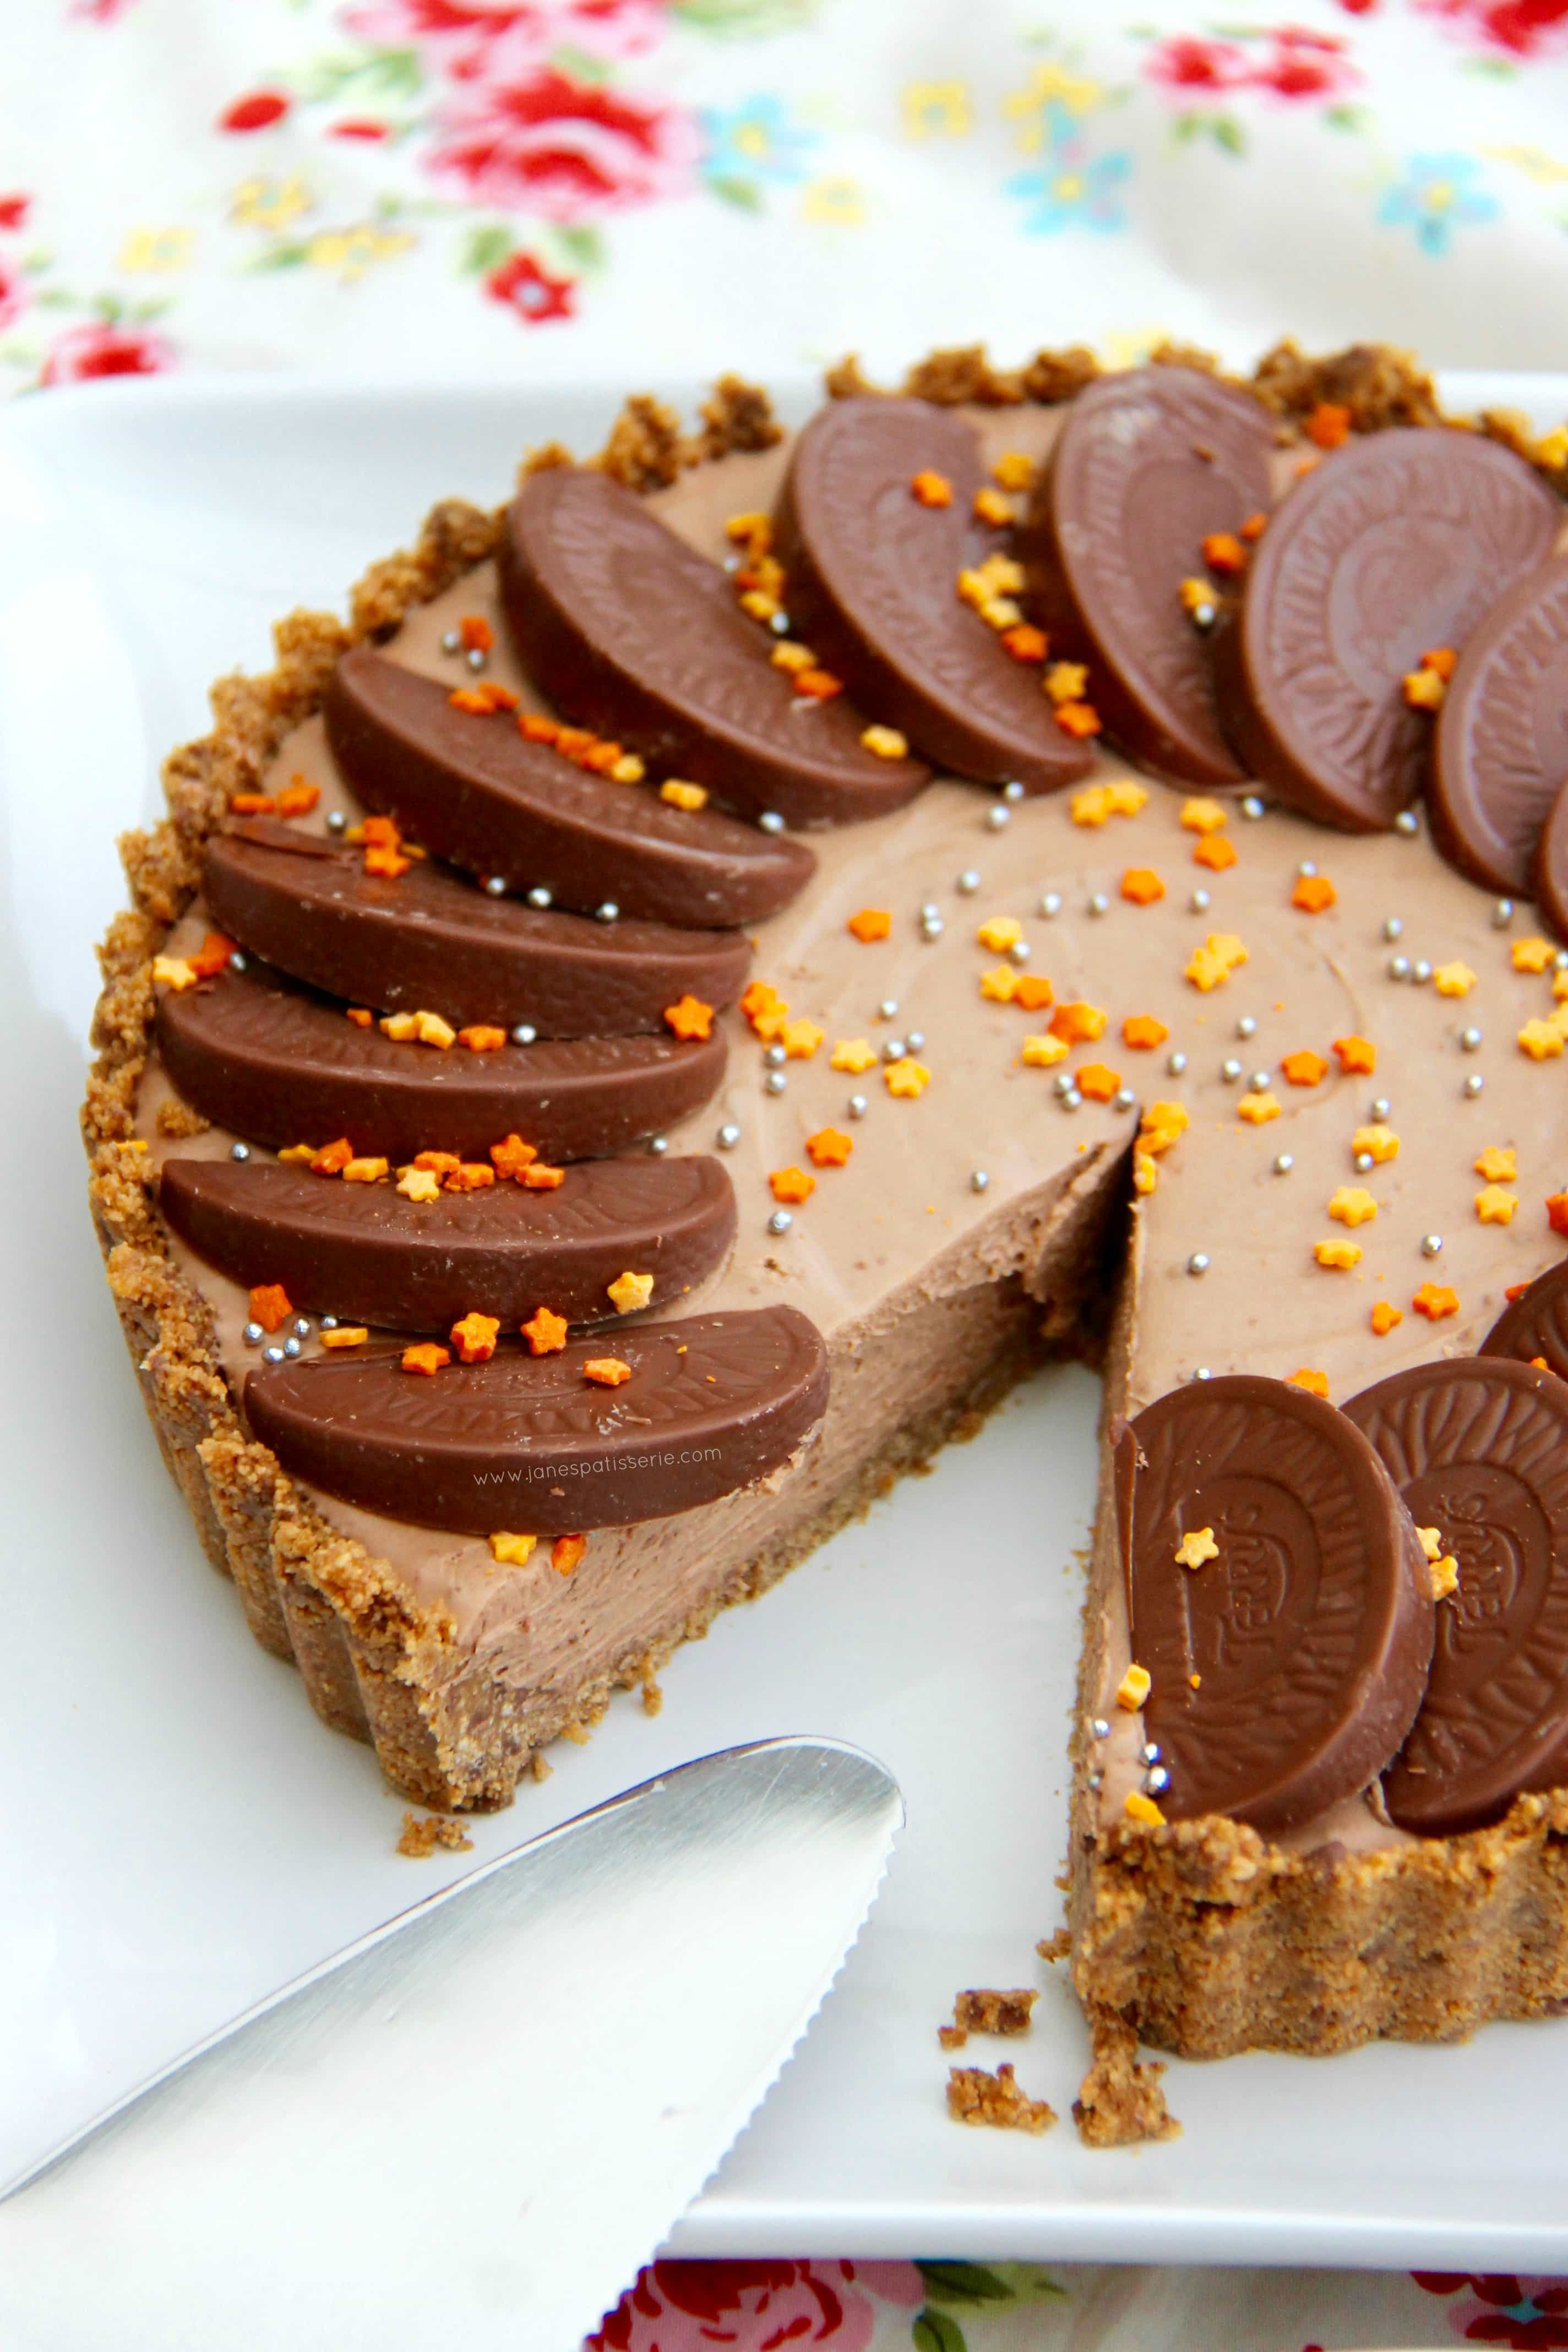 No-Bake Terry's Chocolate Orange Tart! - Jane's Patisserie